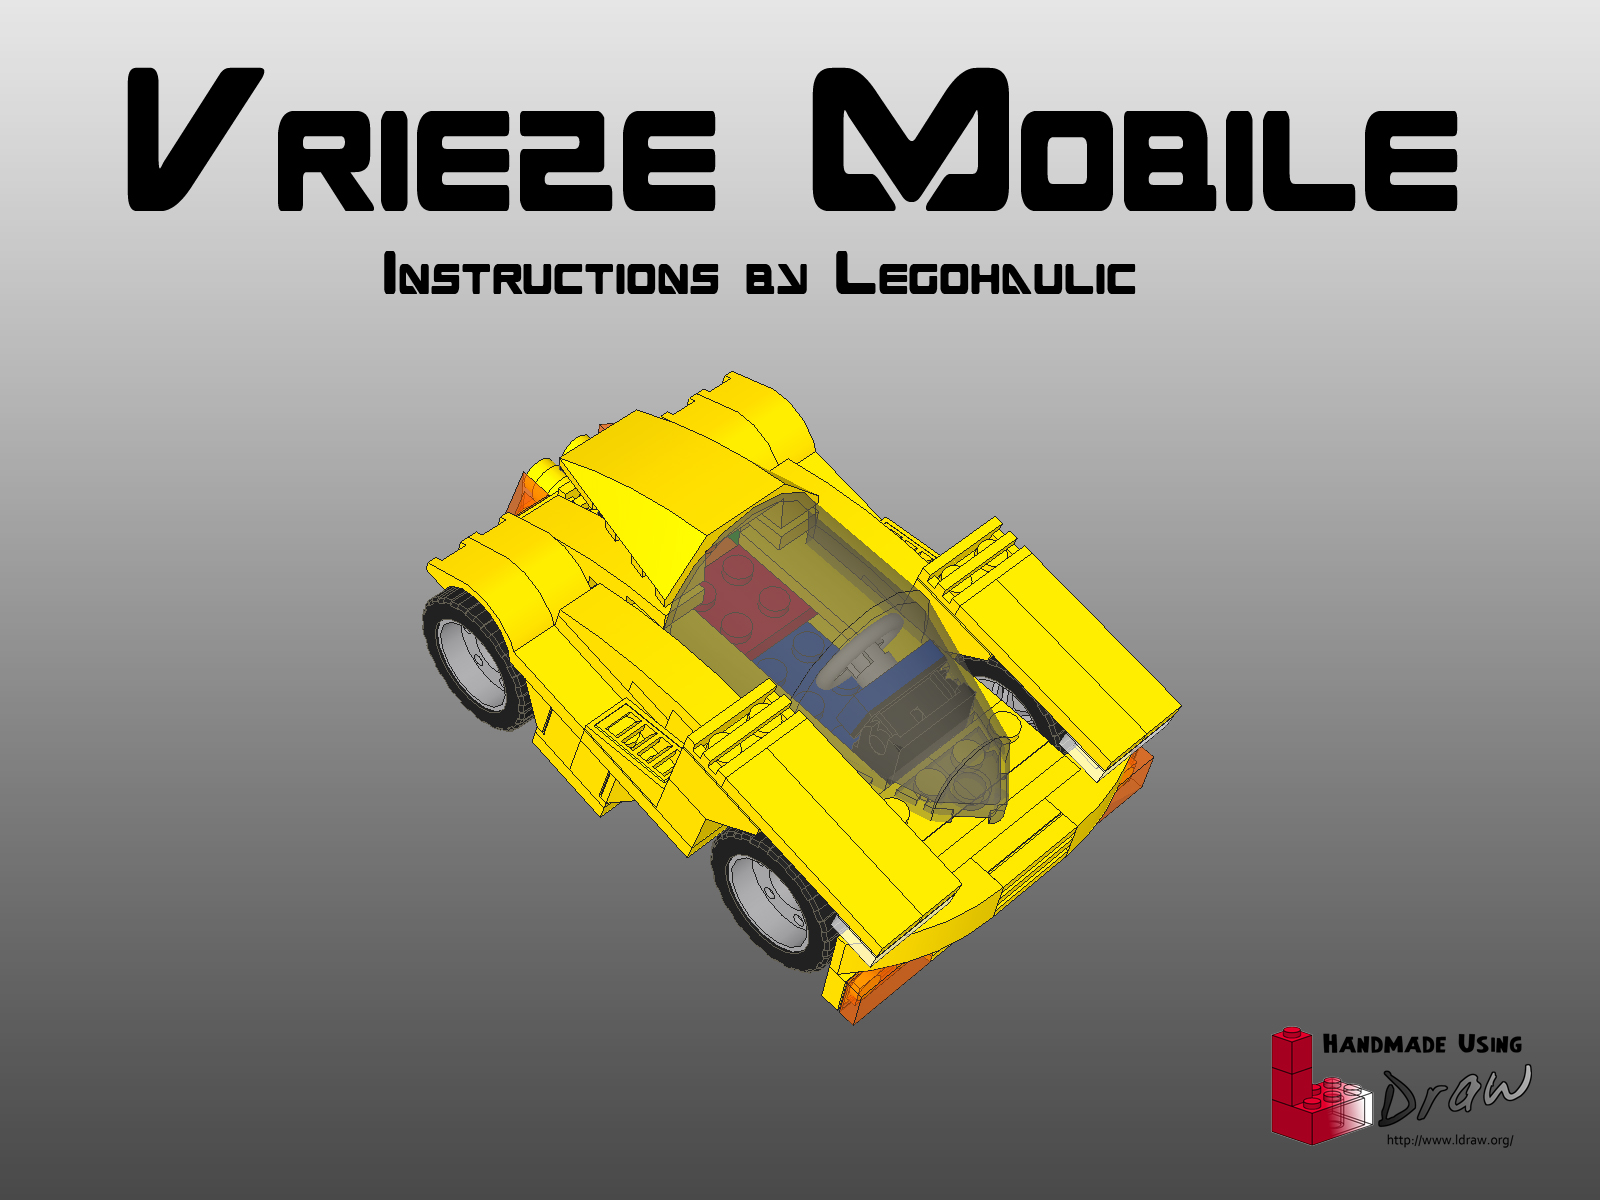 Vrieze Mobile